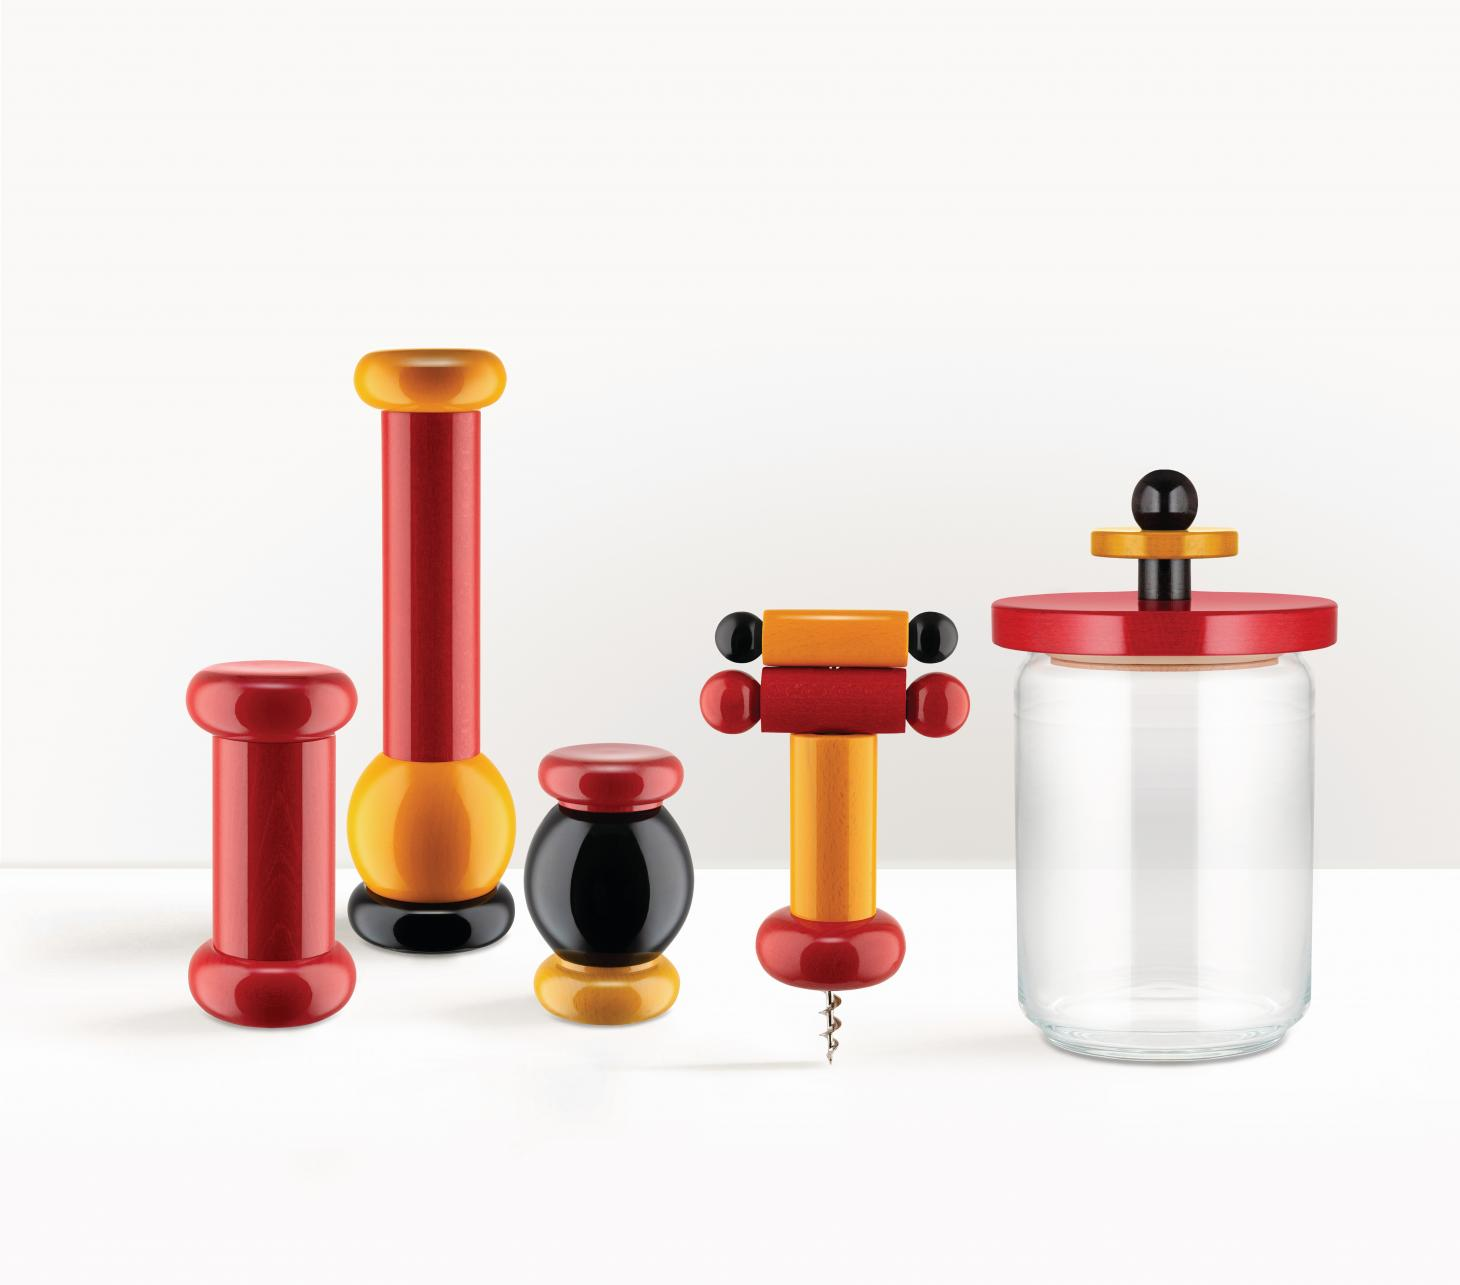 Colorful Kitchen accessories by Ettore Sottsass for Alessi in wood and metal